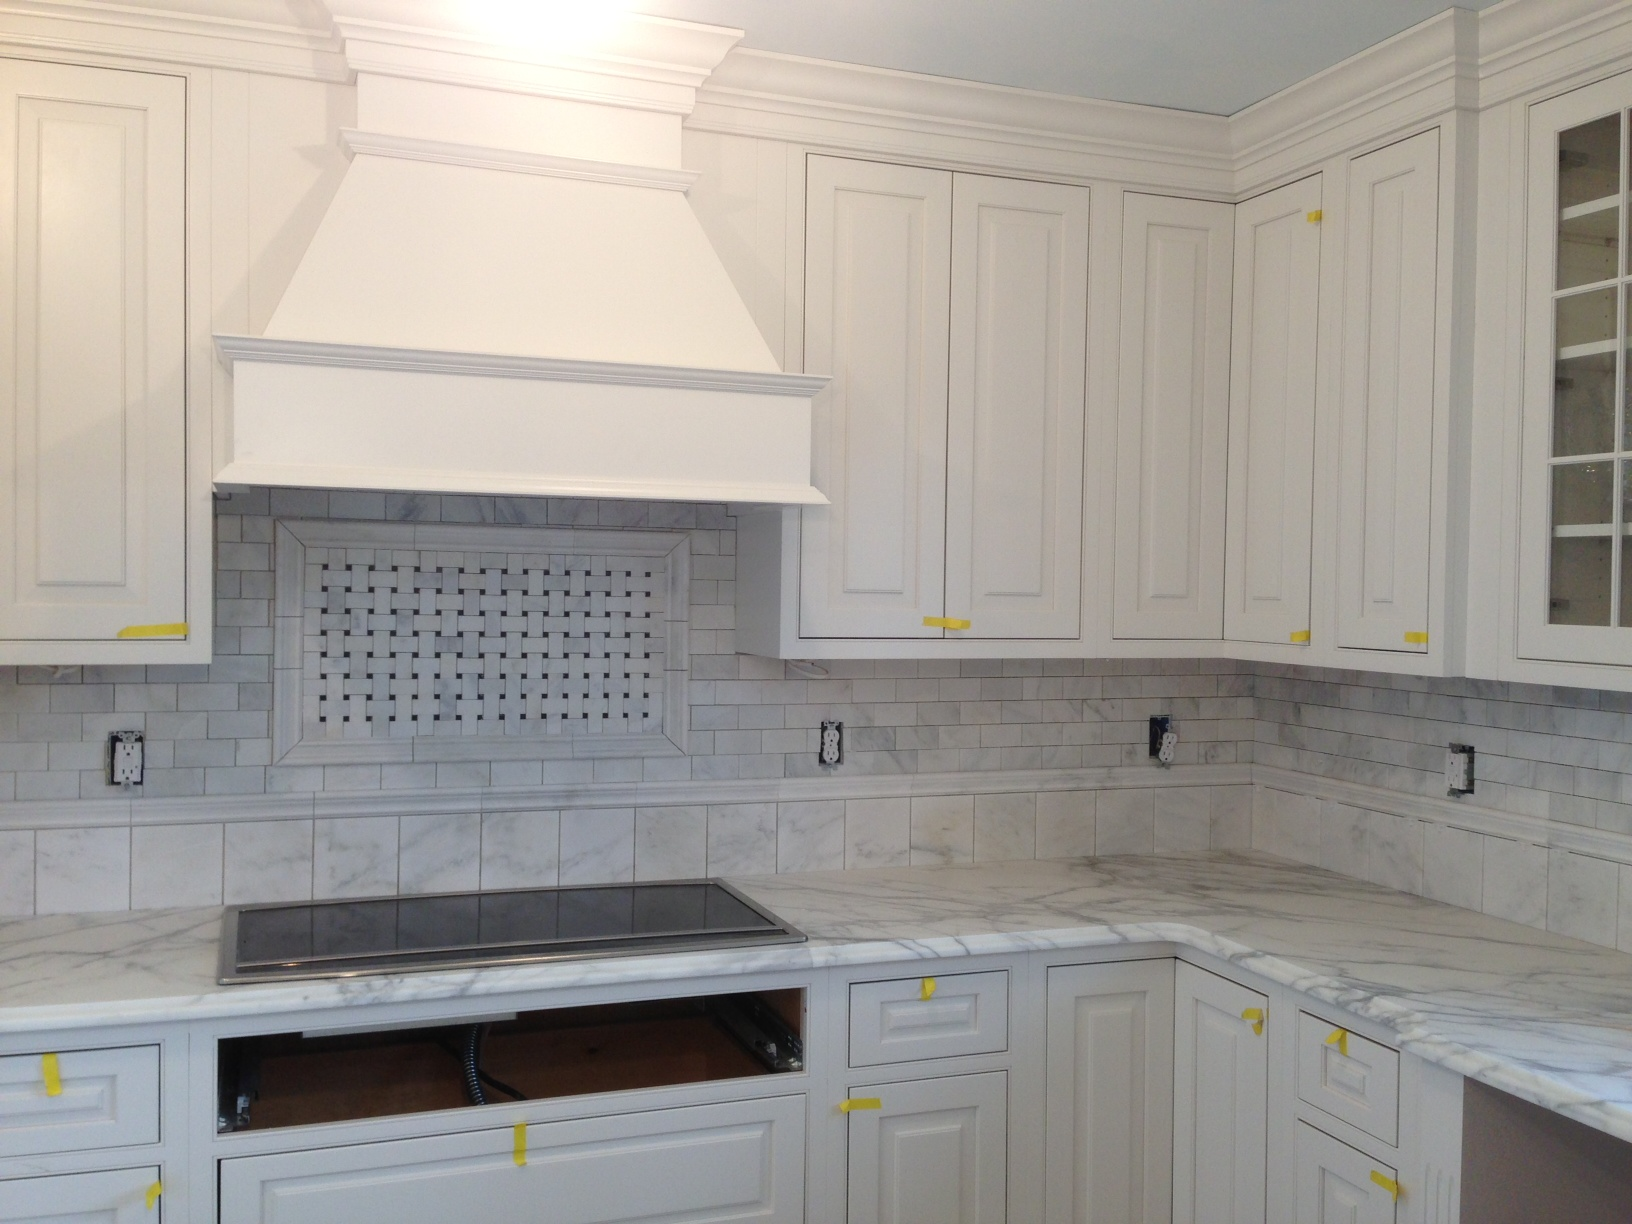 White On White A Very Classy Look Kitchen Design Center